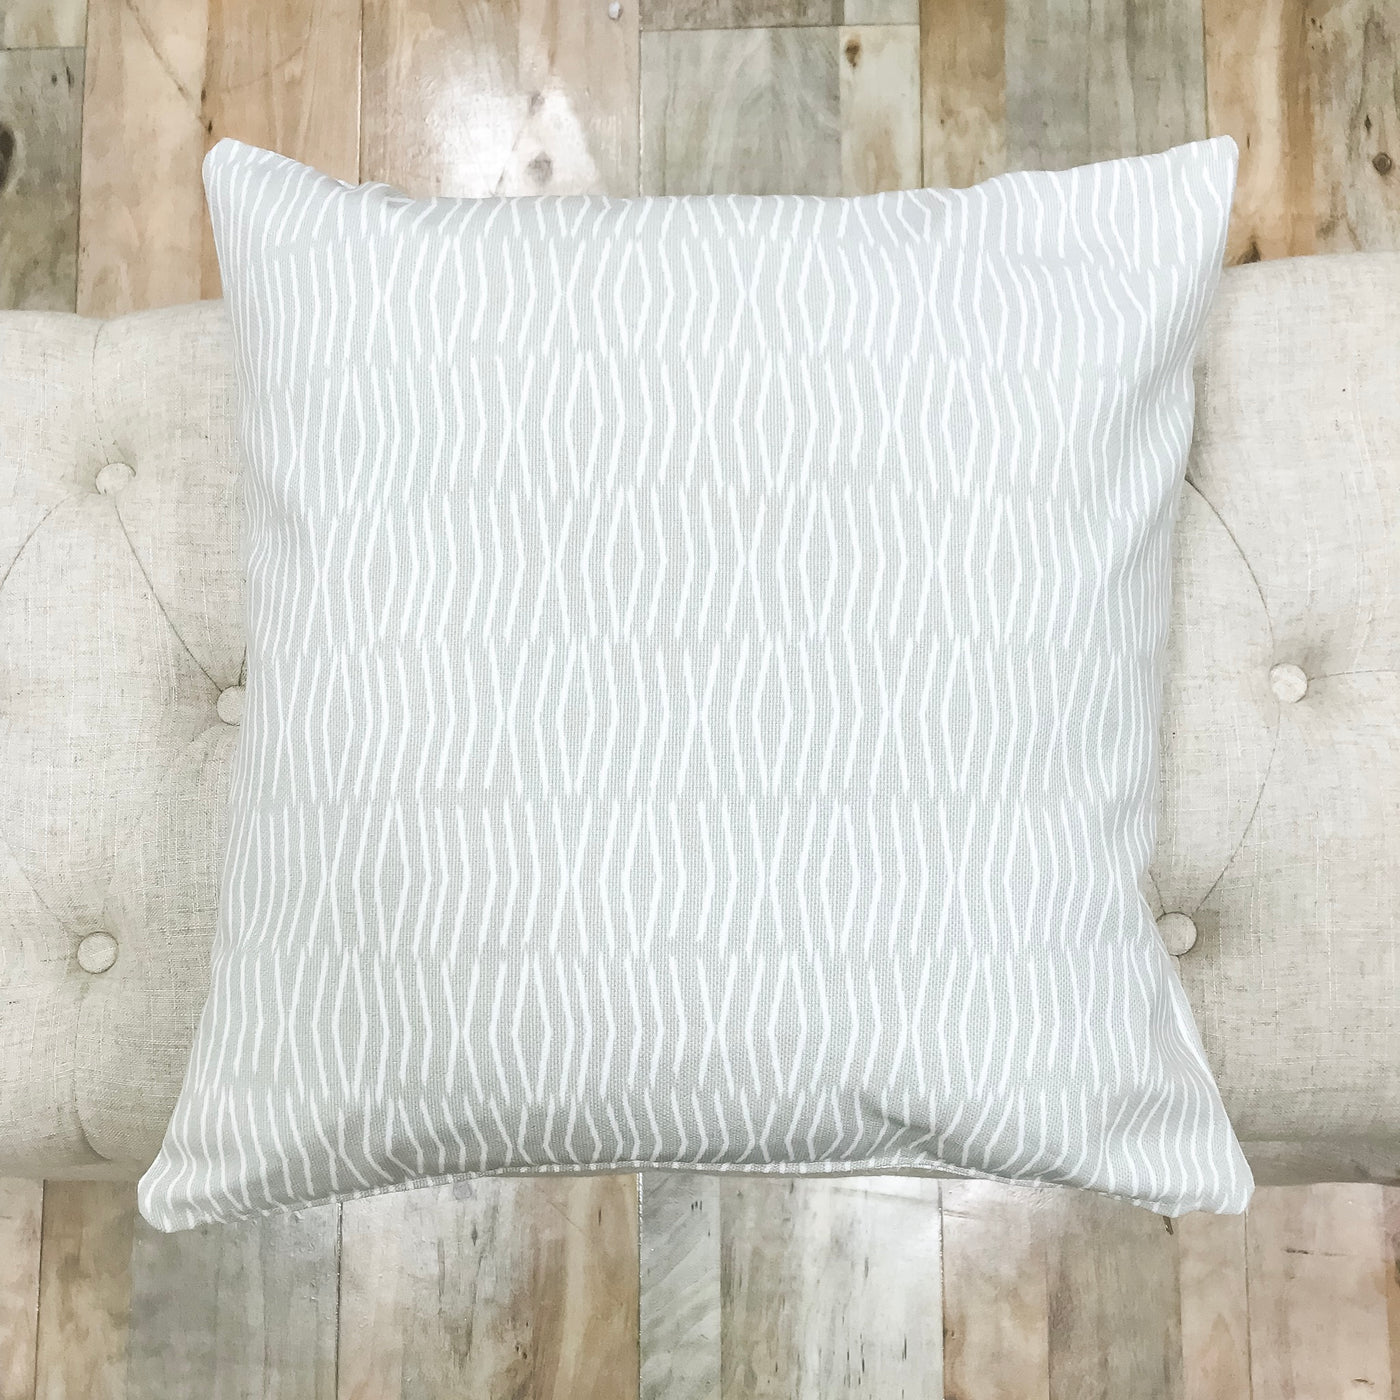 Elevated light gray throw pillows - PHIL - Studio Pillows